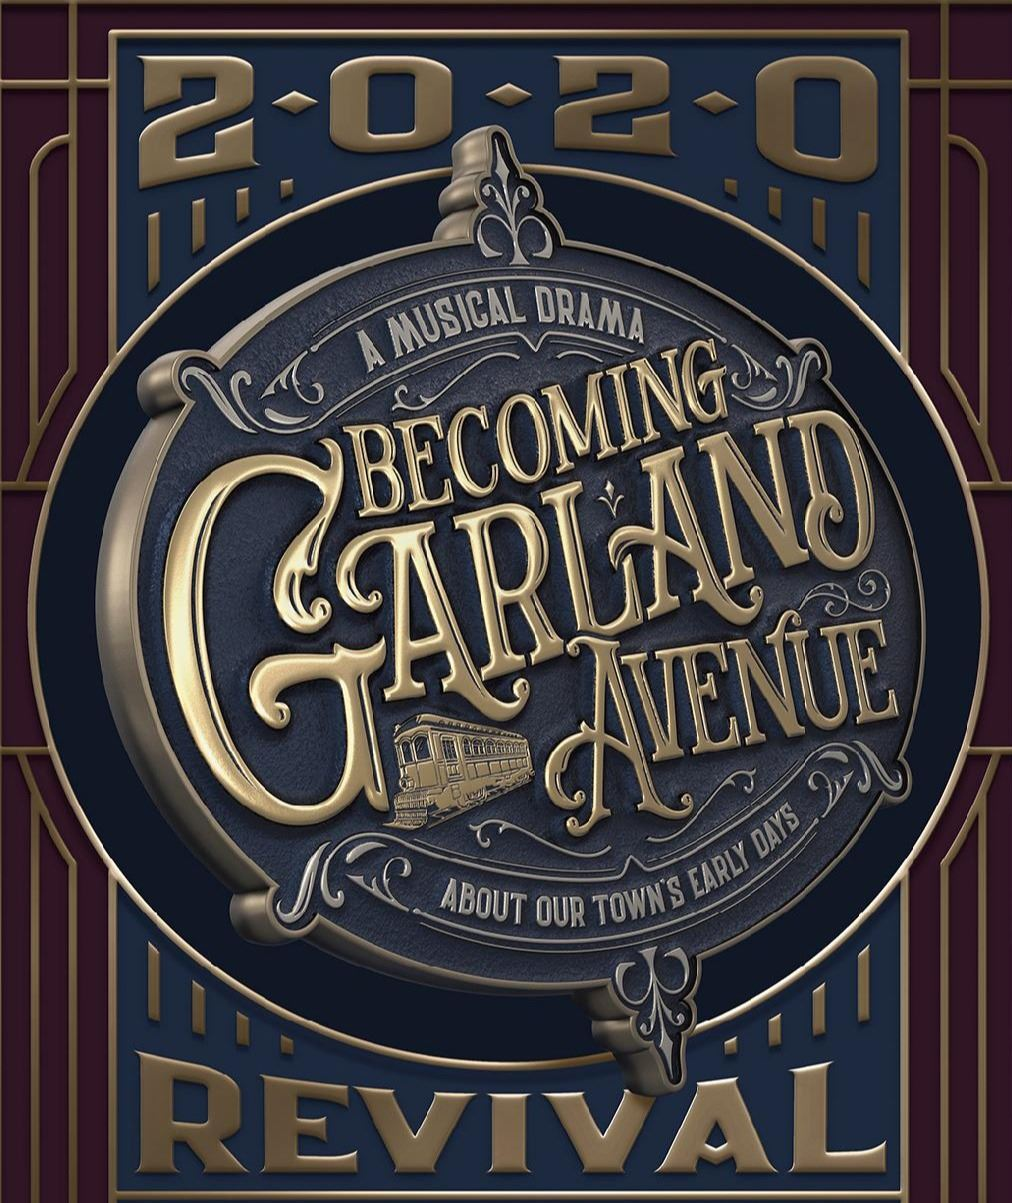 """Becoming Garland Avenue"" 2020 Revivial"